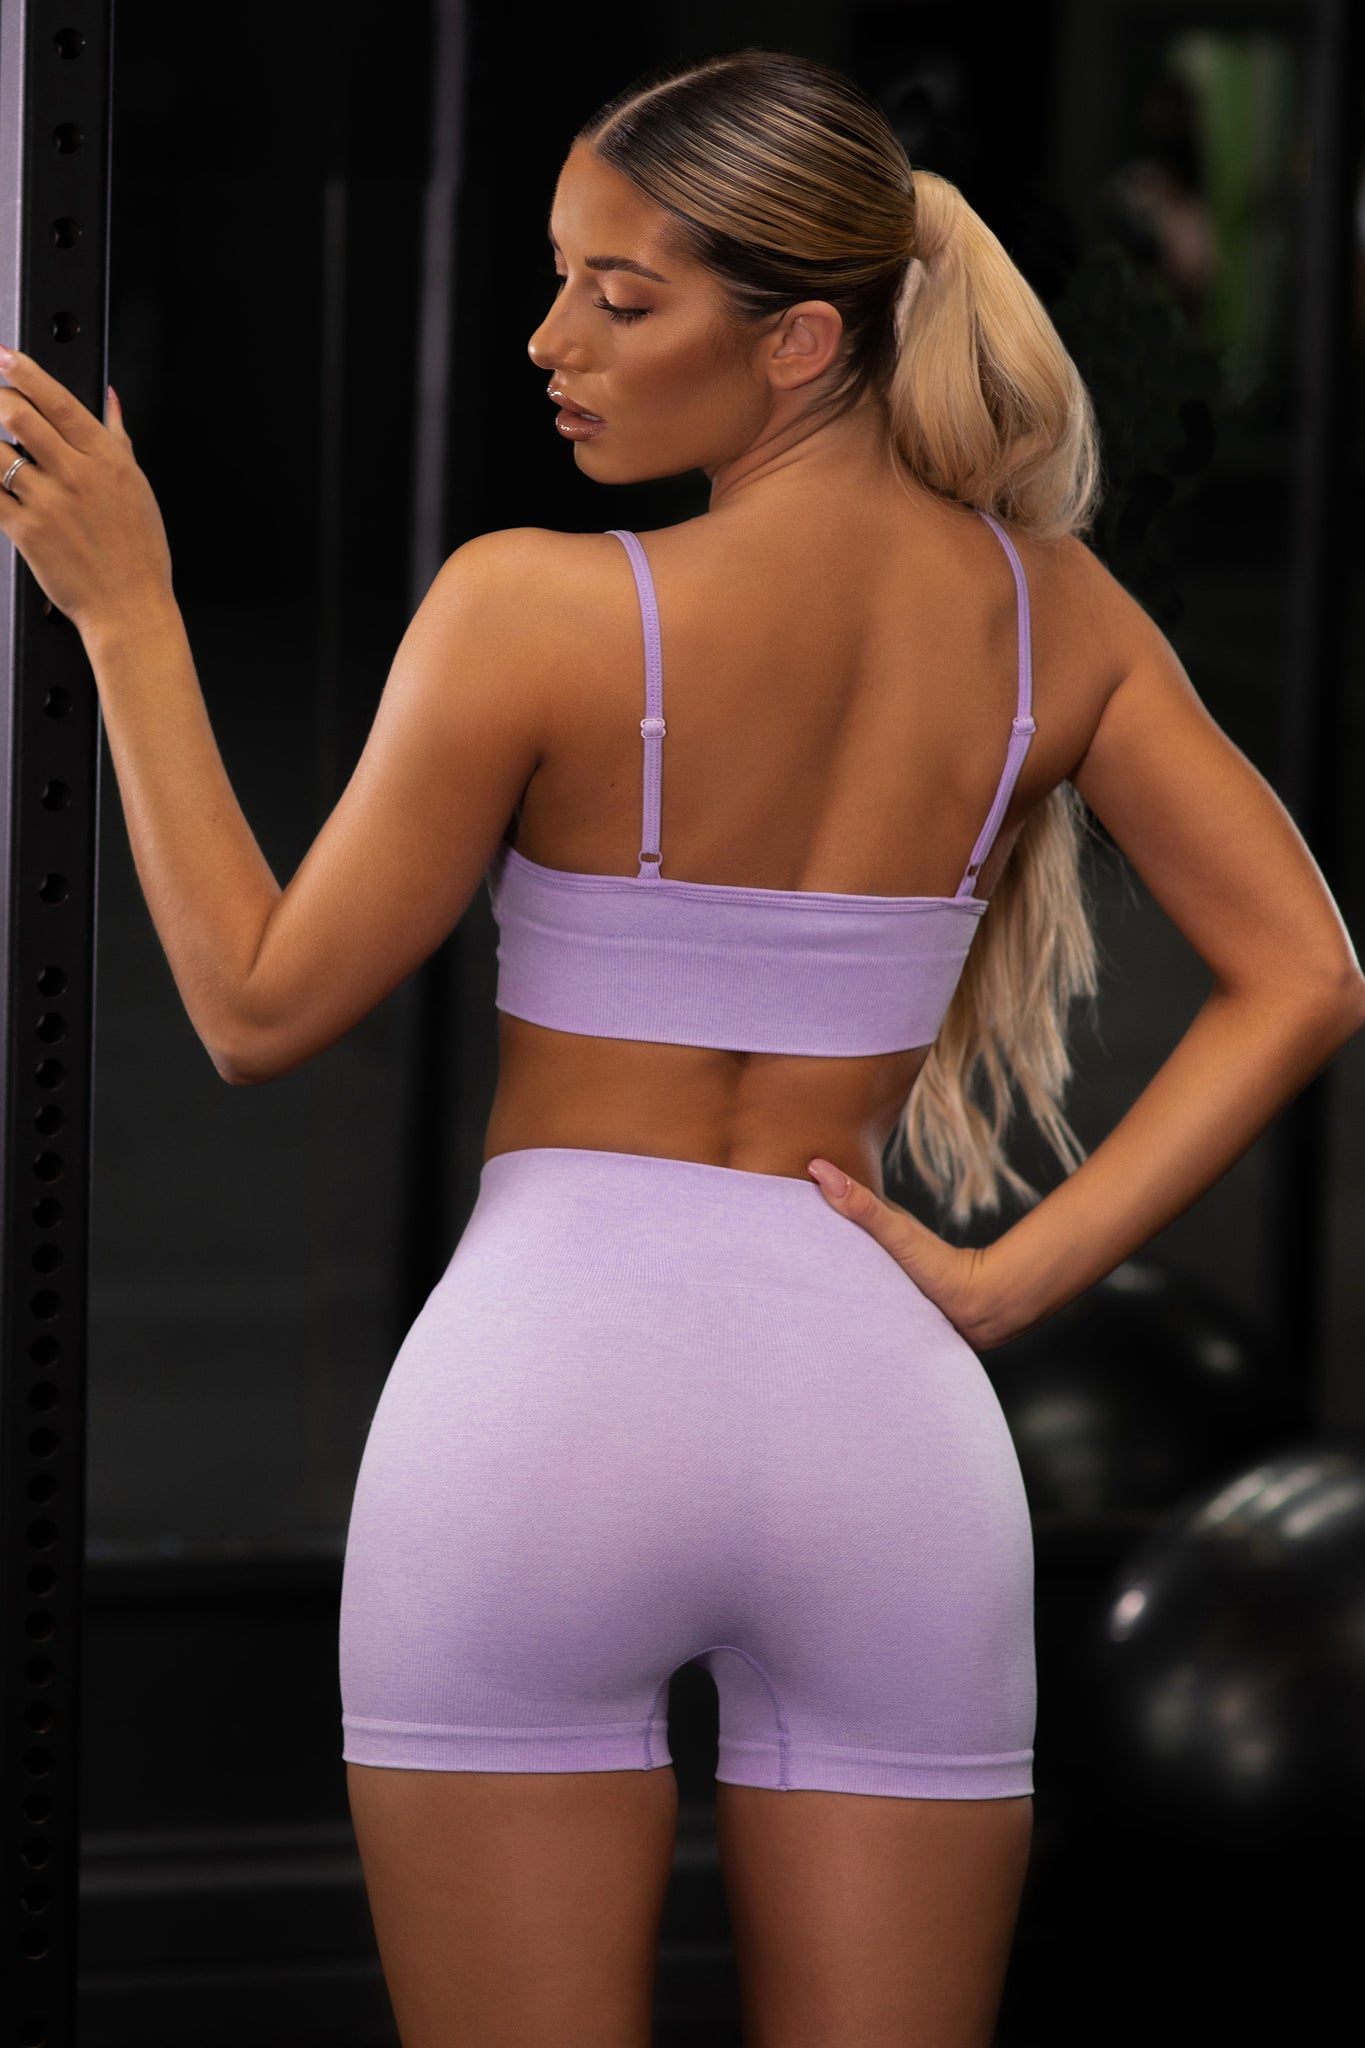 Plain lilac V neck sports bra with ribbed underband and thin adjustable straps. Image 3 of 6.